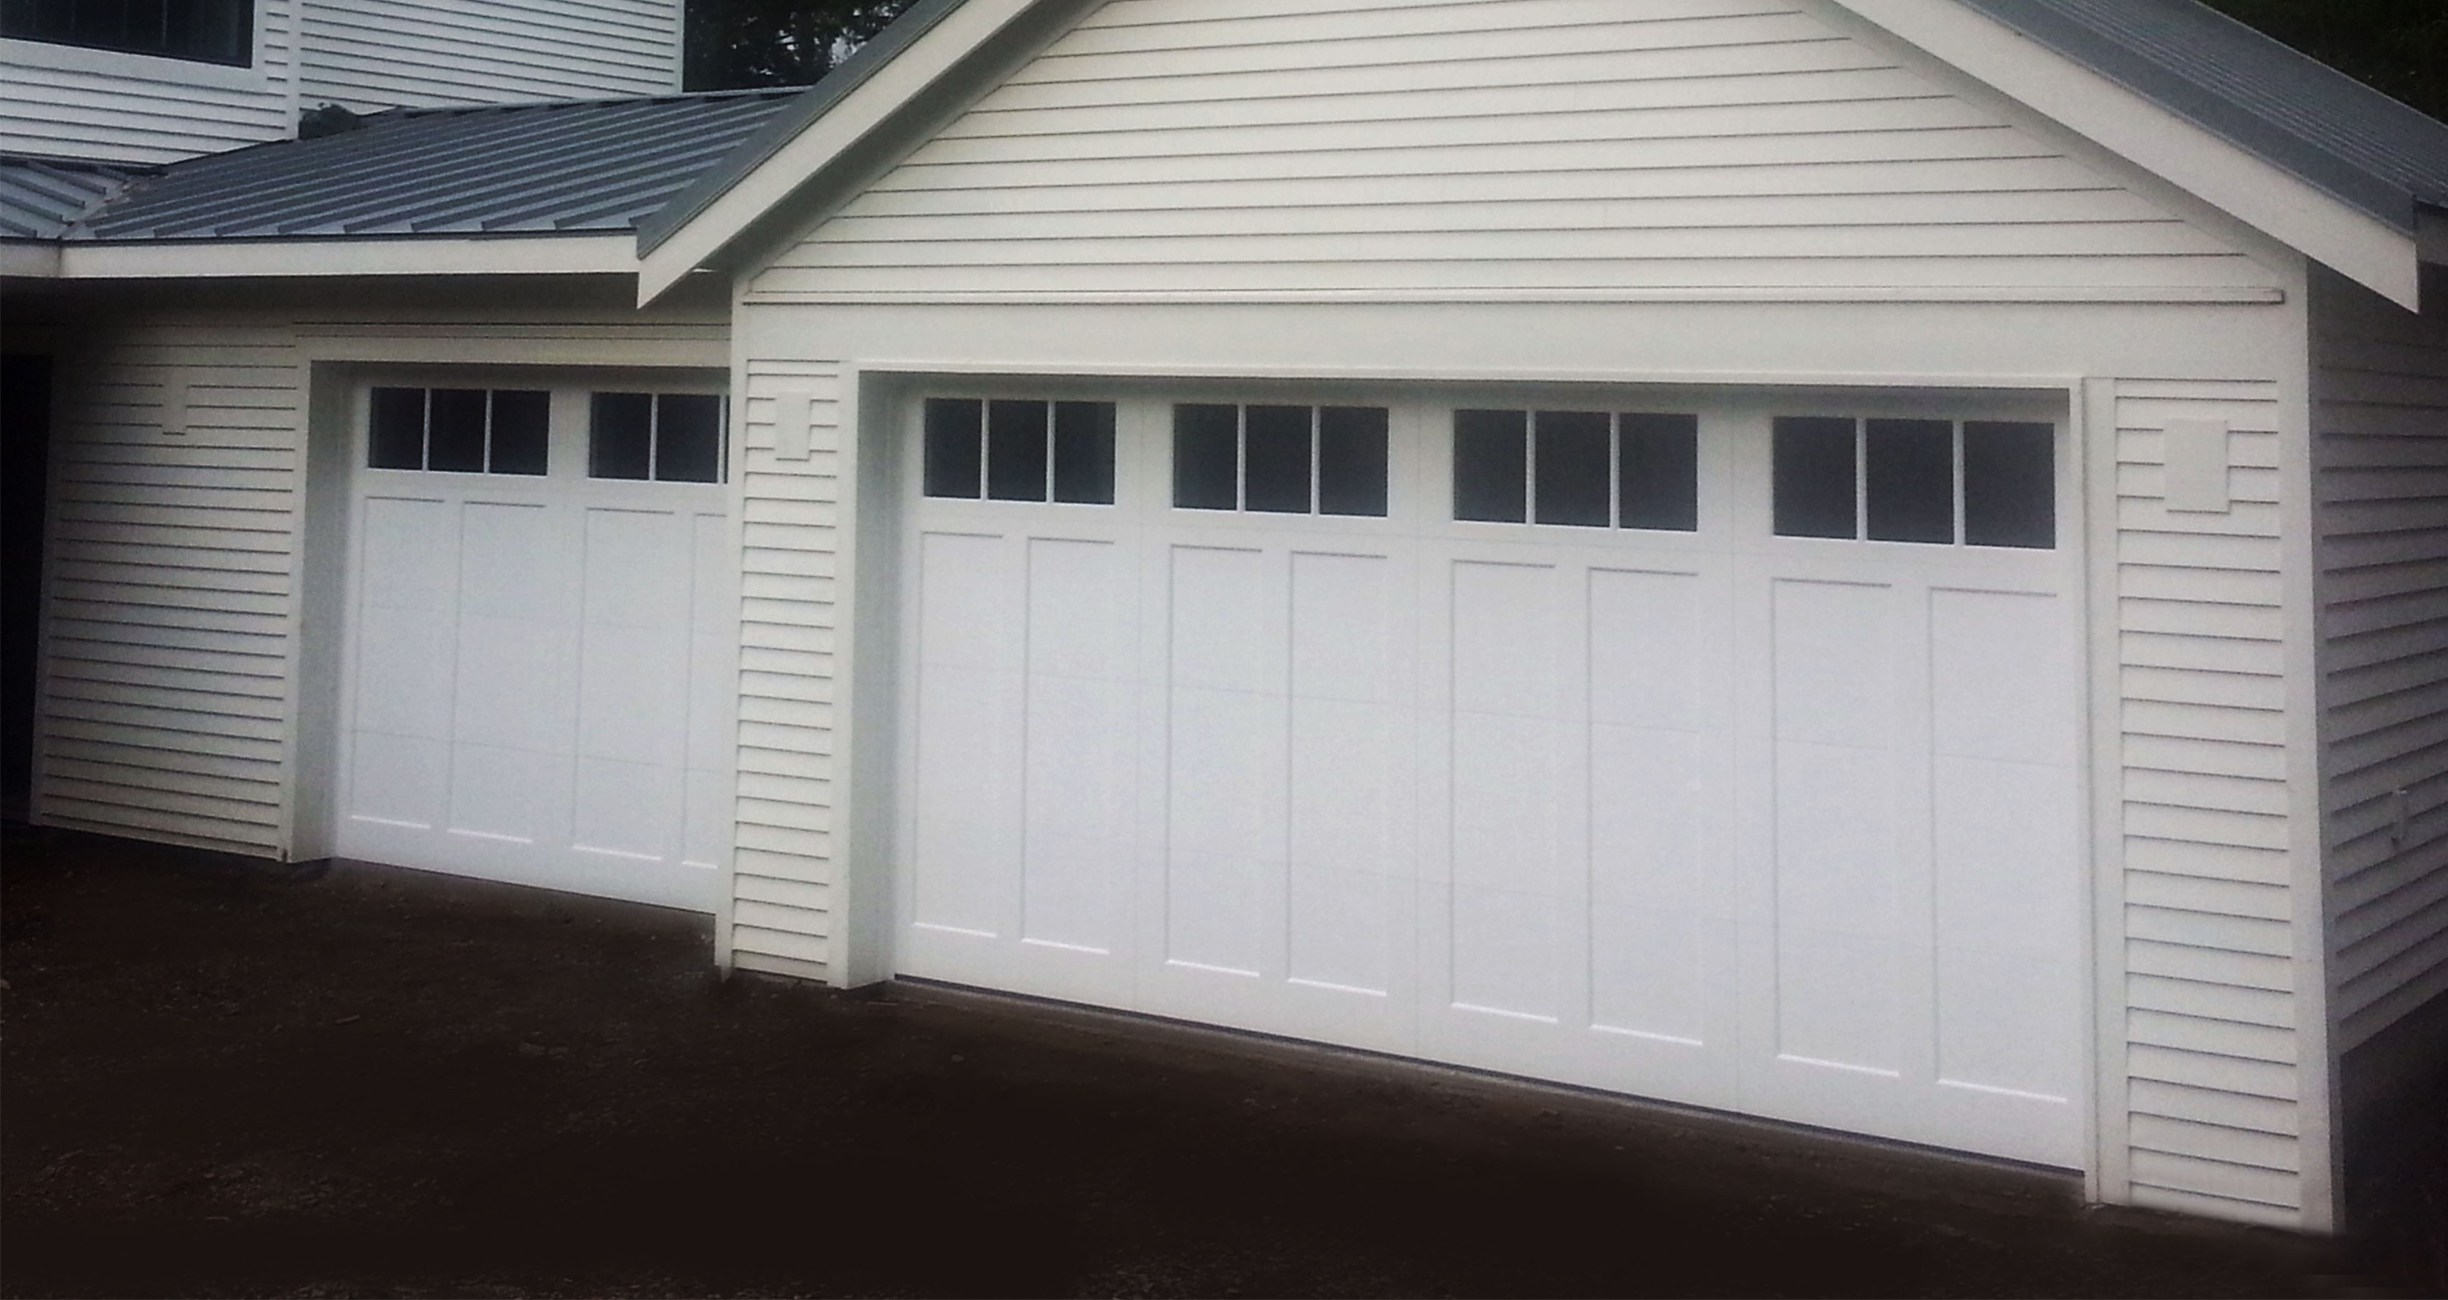 siding door on mn manufacturers a with white gray doors black chi semi installation transparent minnesota two filter wood elite garage house carriage in